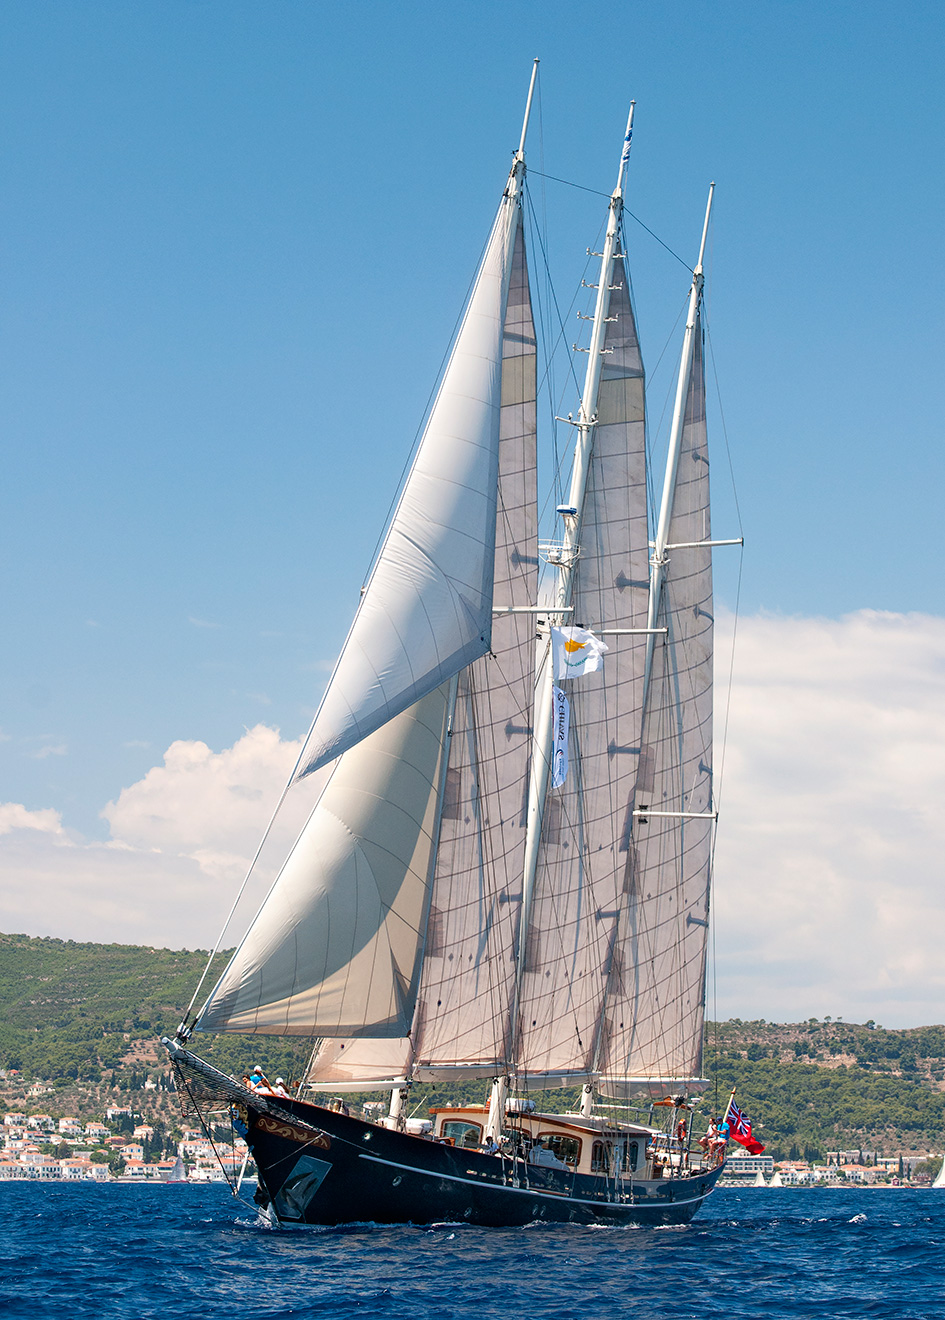 the-restored-classic-schooner-sailing-super-yacht-malcolm-miller-with-her-sails-aloft